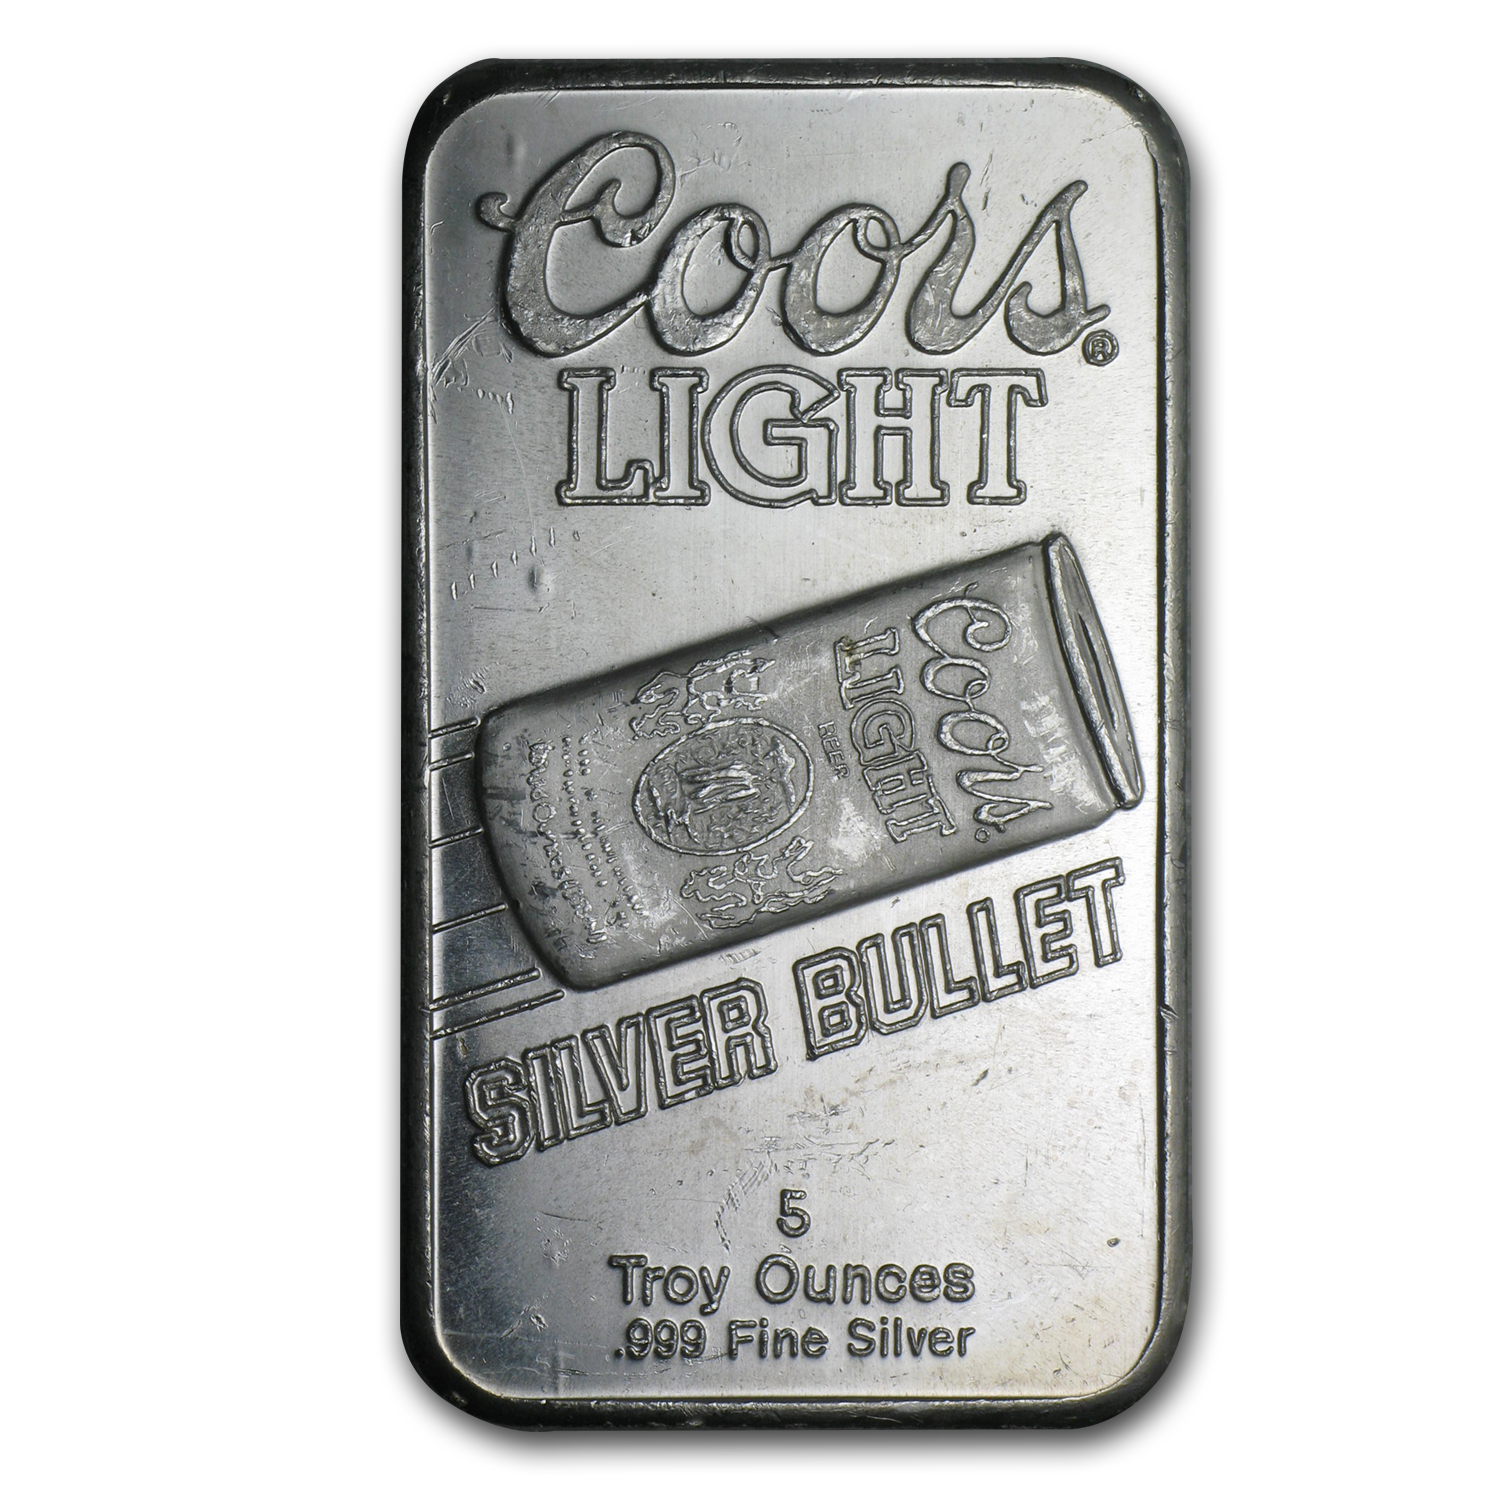 5 oz Silver Bar - Coors Light Silver Bullet